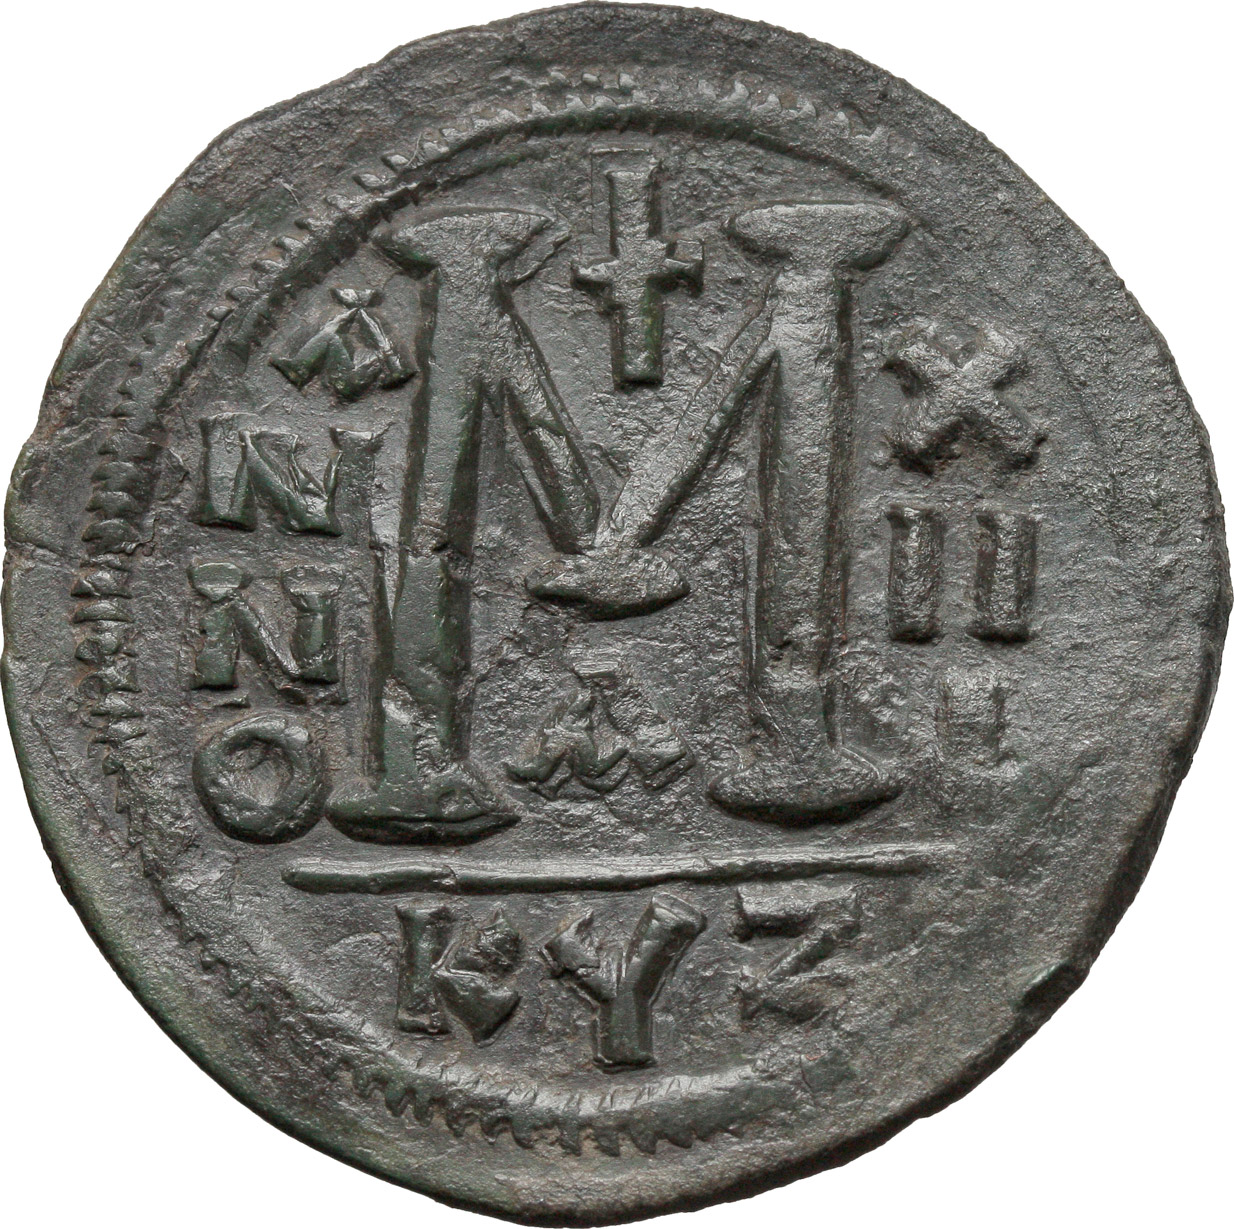 R/ Justinian I (527-565).  AE Follis, Cyzicus mint. Obv. DN IVSTINIANVS PP AVG. Helmeted and cuirassed bust facing, holding globus cruciger and shield; to right, cross. Rev. Large M between A/N/N/O e X/II/I; above, cross; below, A; in exergue, KYZ. DOC 164-81. Sear 207. AE. g. 22.04  mm. 42.00   Rare in this condition, green patina. About EF.